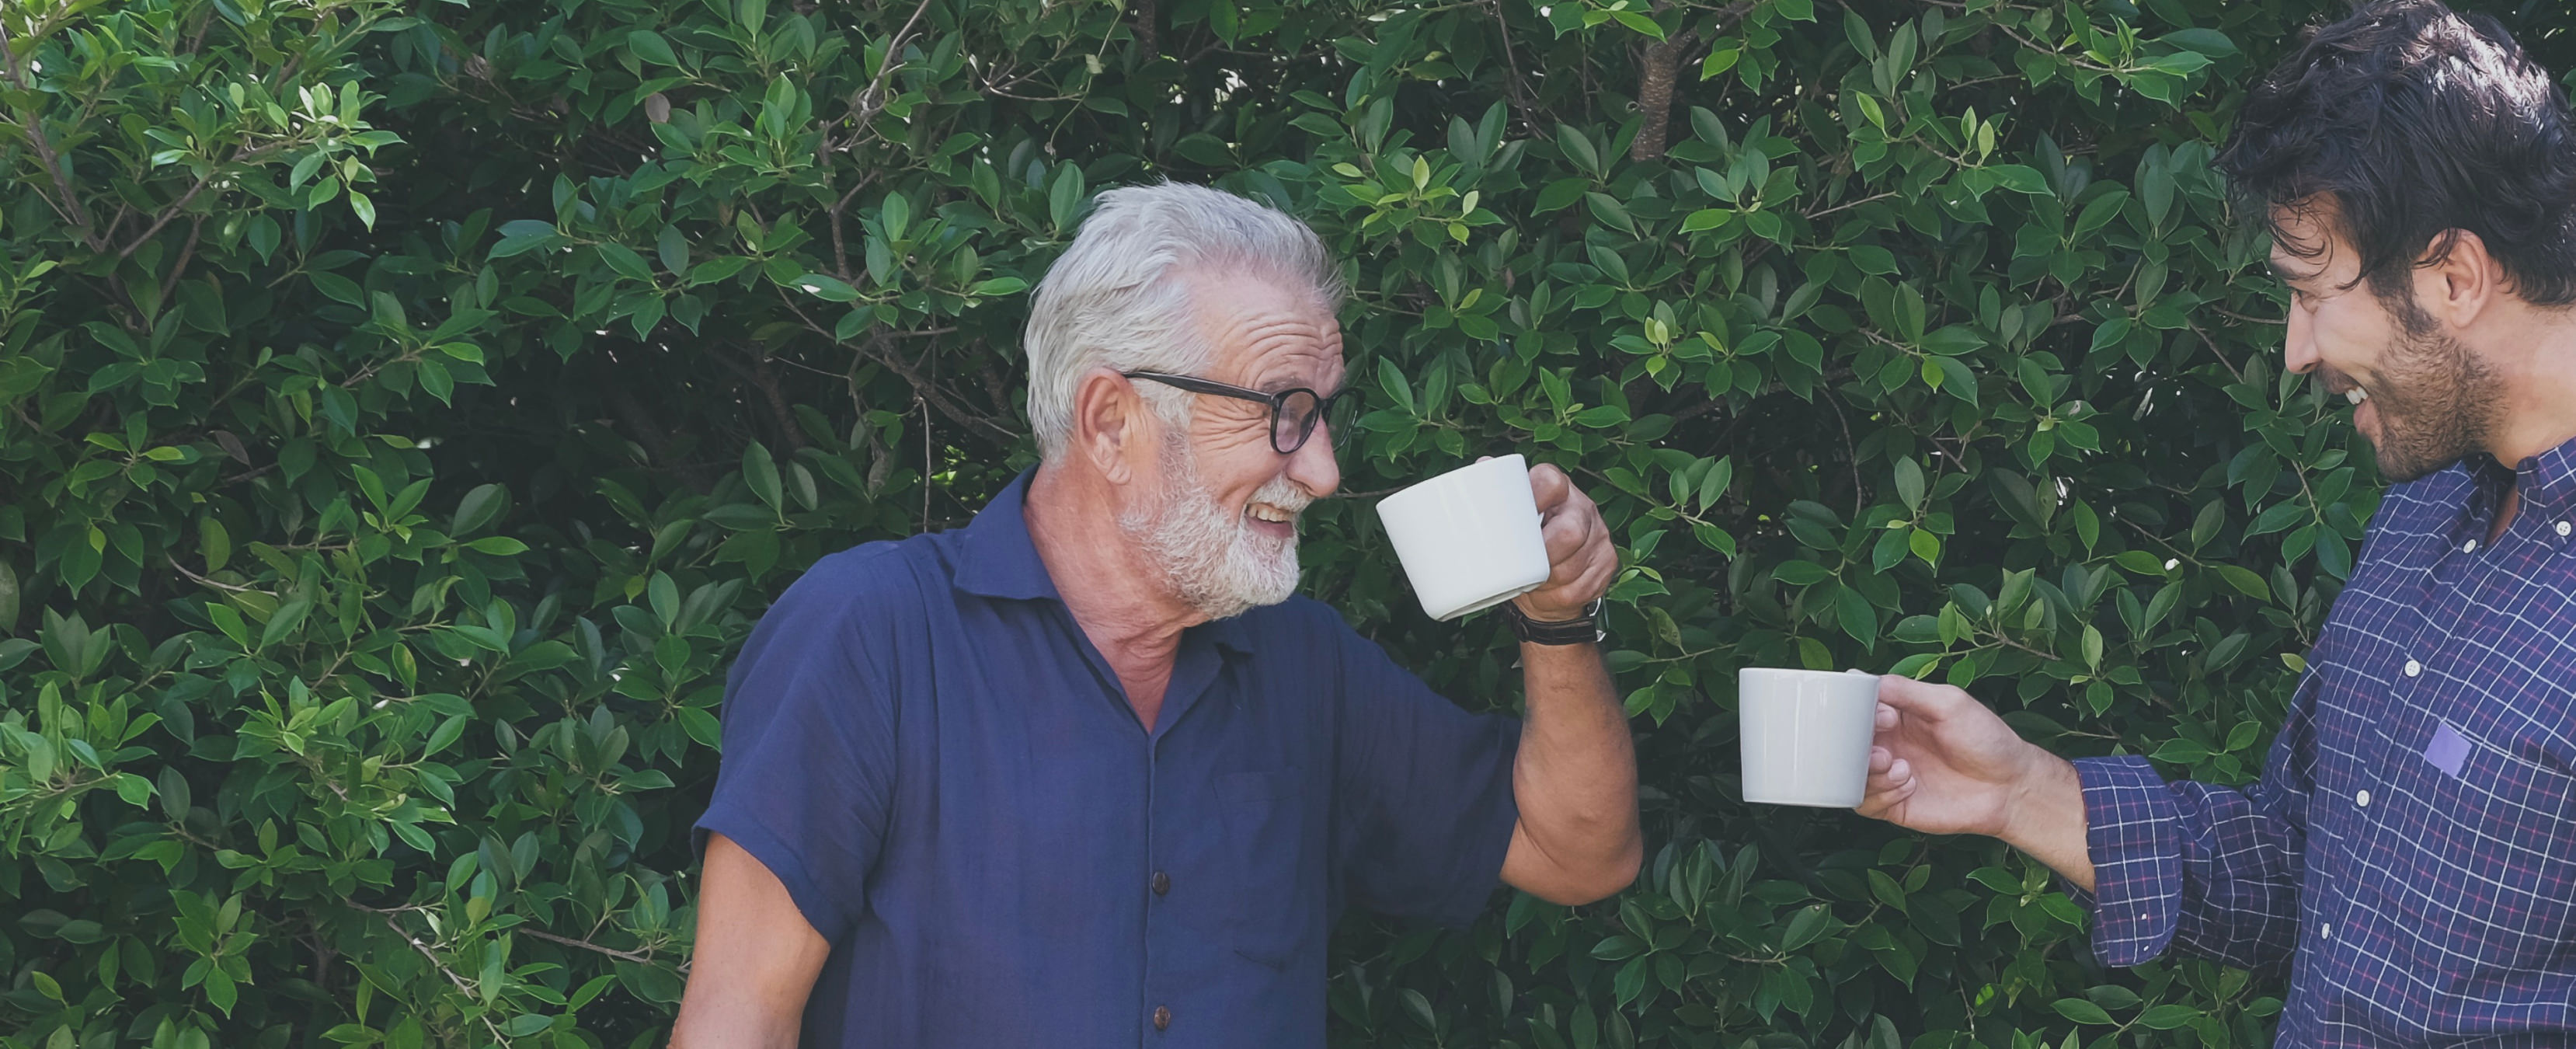 One man in front of some foliage holding up a cup smiling